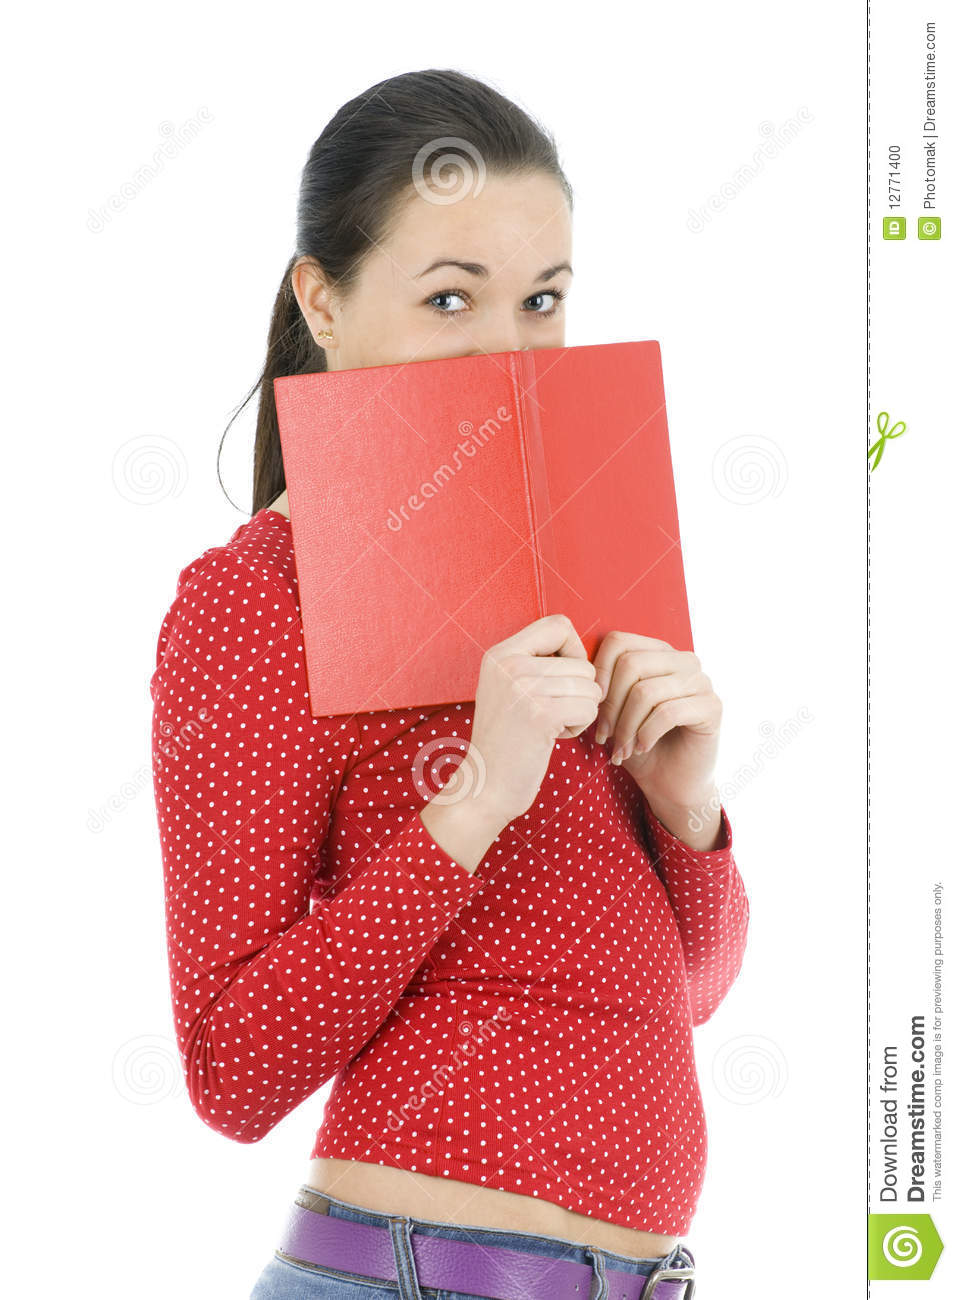 Book Covering Face : Young woman covering face by red book stock photo image